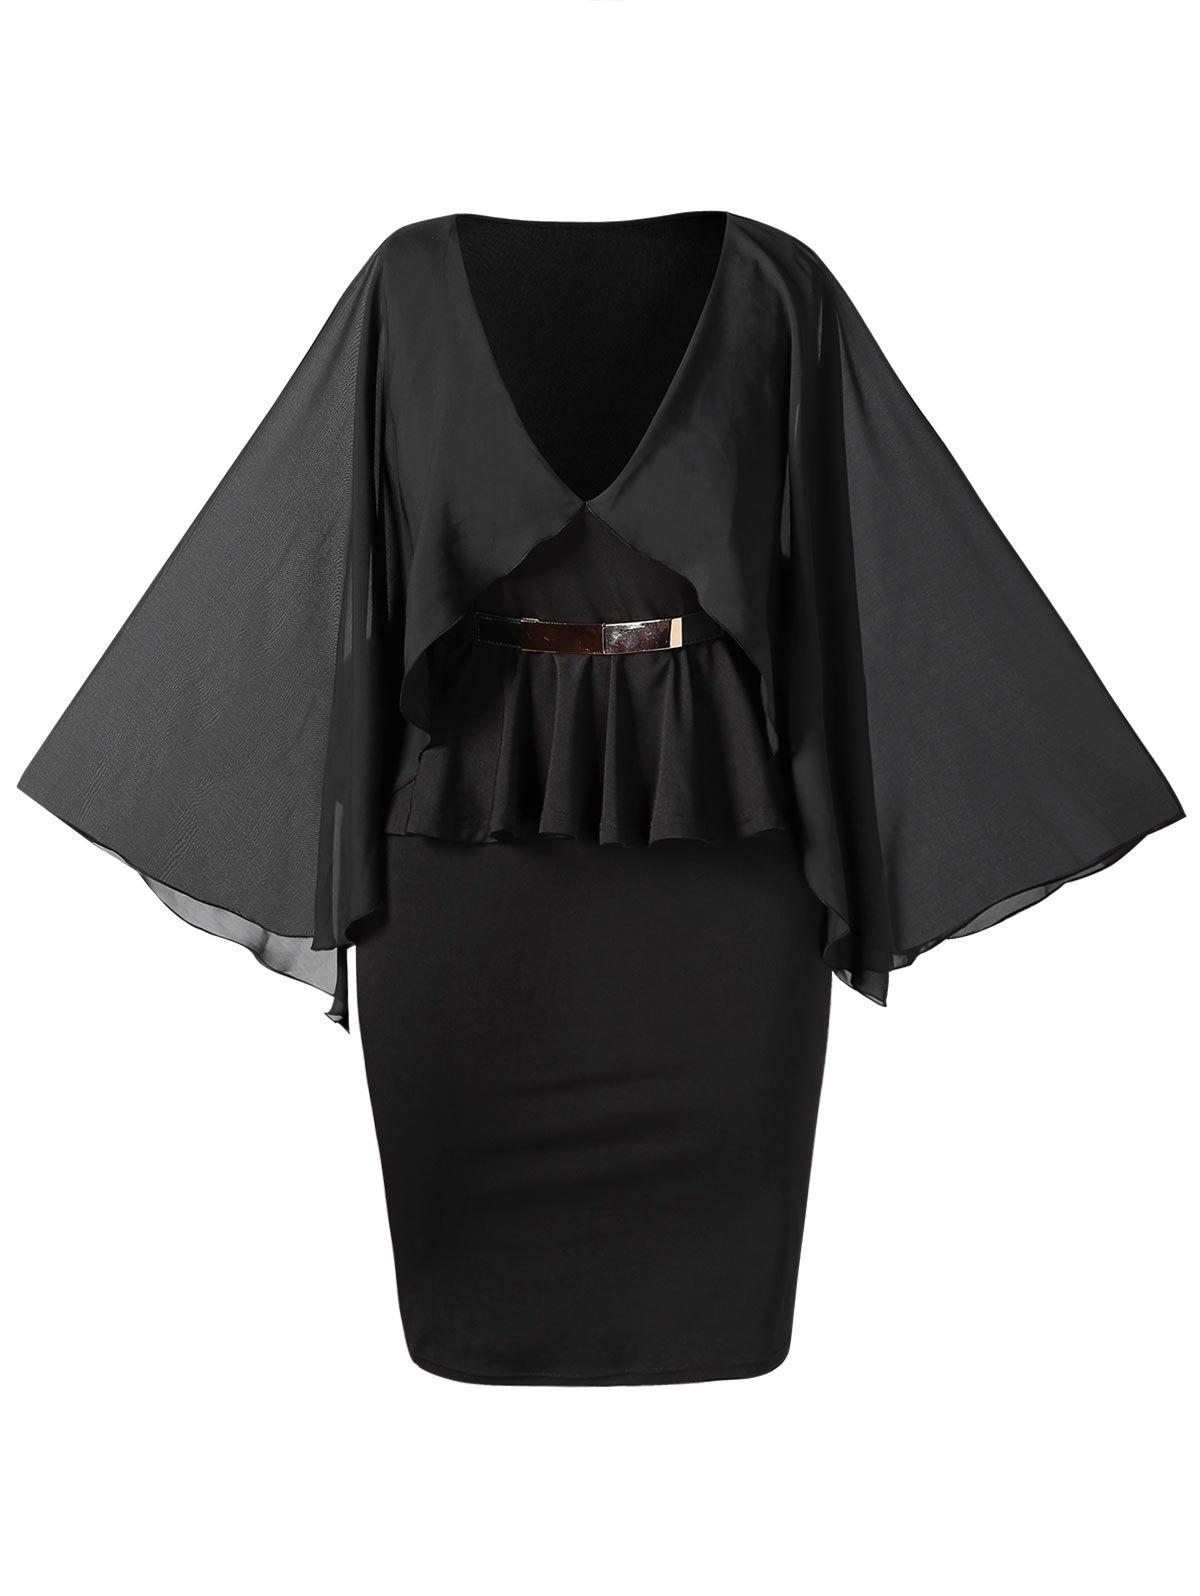 Outfit Plunging Neck Plus Size Cape Peplum Dress